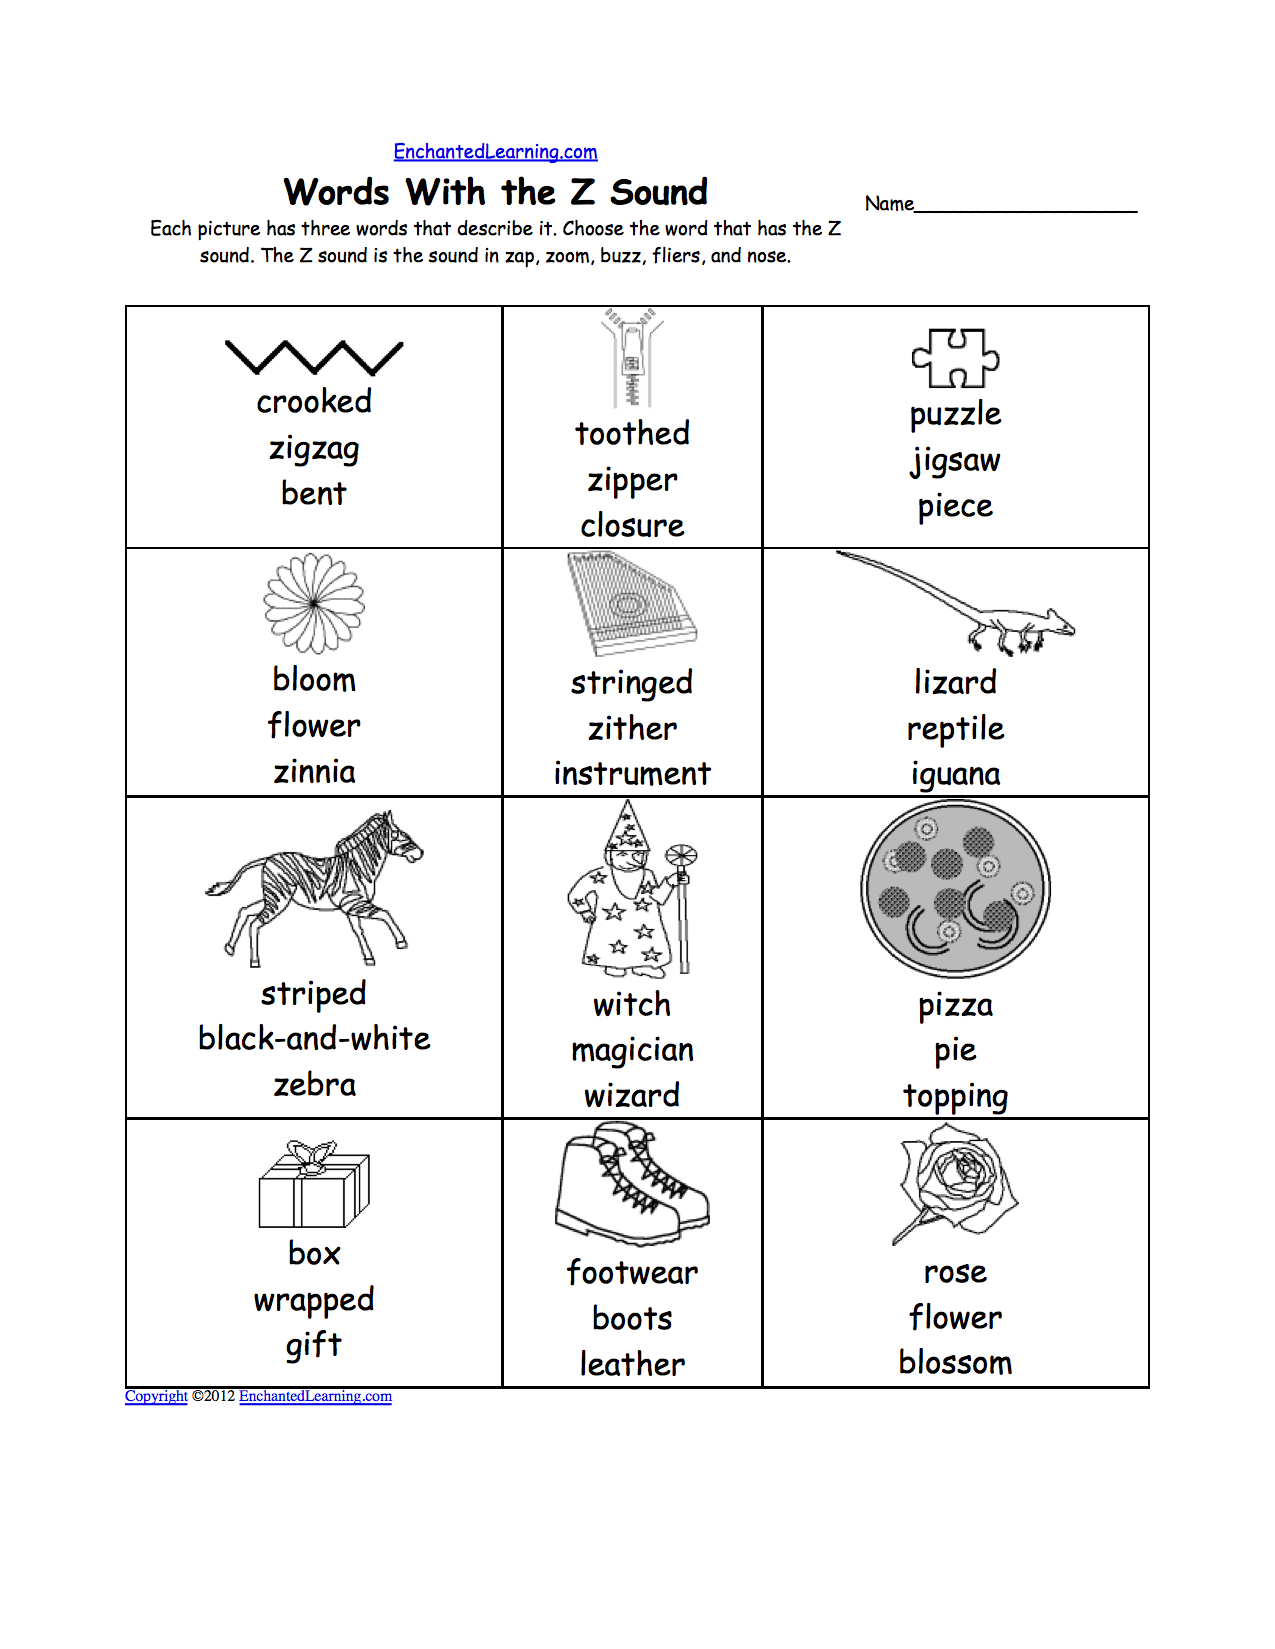 Proatmealus  Winsome Phonics Worksheets Multiple Choice Worksheets To Print  With Great Phonics Worksheets Multiple Choice Worksheets To Print  Enchantedlearningcom With Delightful Distributive Property Worksheets With Answers Also Pre Primary Worksheets In Addition Personification Worksheets For Rd Grade And Phonetics Worksheet As Well As Maths Colour By Numbers Worksheets Additionally Year  Chemistry Worksheets From Enchantedlearningcom With Proatmealus  Great Phonics Worksheets Multiple Choice Worksheets To Print  With Delightful Phonics Worksheets Multiple Choice Worksheets To Print  Enchantedlearningcom And Winsome Distributive Property Worksheets With Answers Also Pre Primary Worksheets In Addition Personification Worksheets For Rd Grade From Enchantedlearningcom